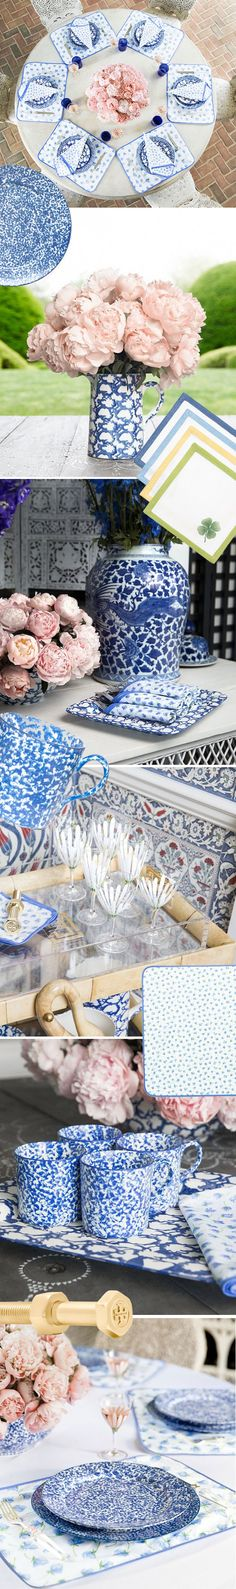 Blue & White Table Inspiration